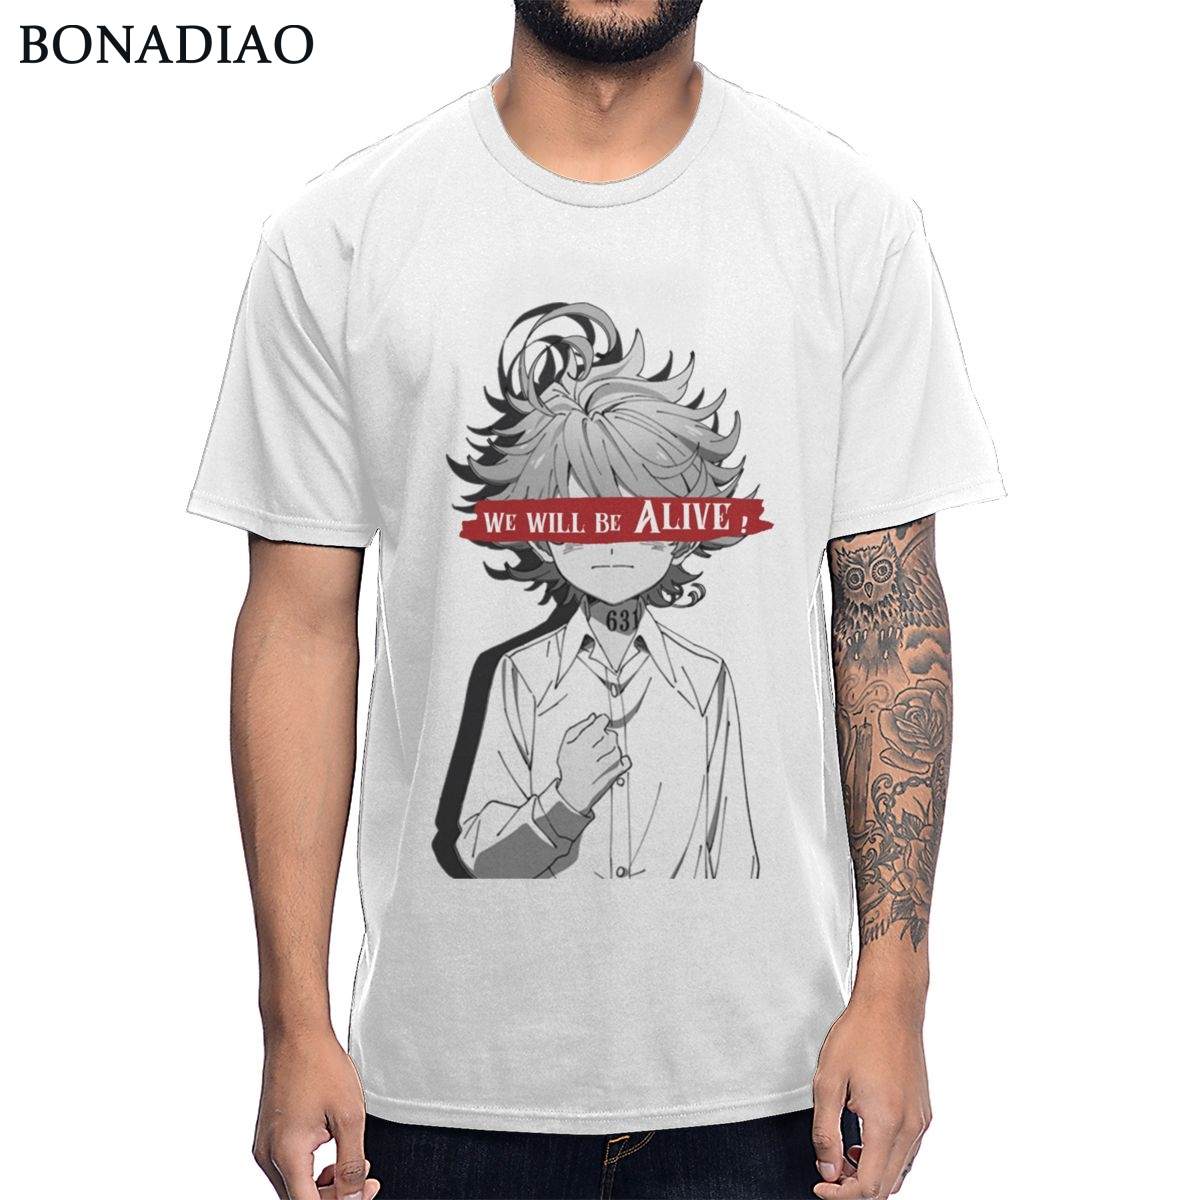 Anime The Promised Neverland T Shirt Emma We Will Be Alive T-shirt Man's High-Q Crewneck 100% Cotton Tee Shirt